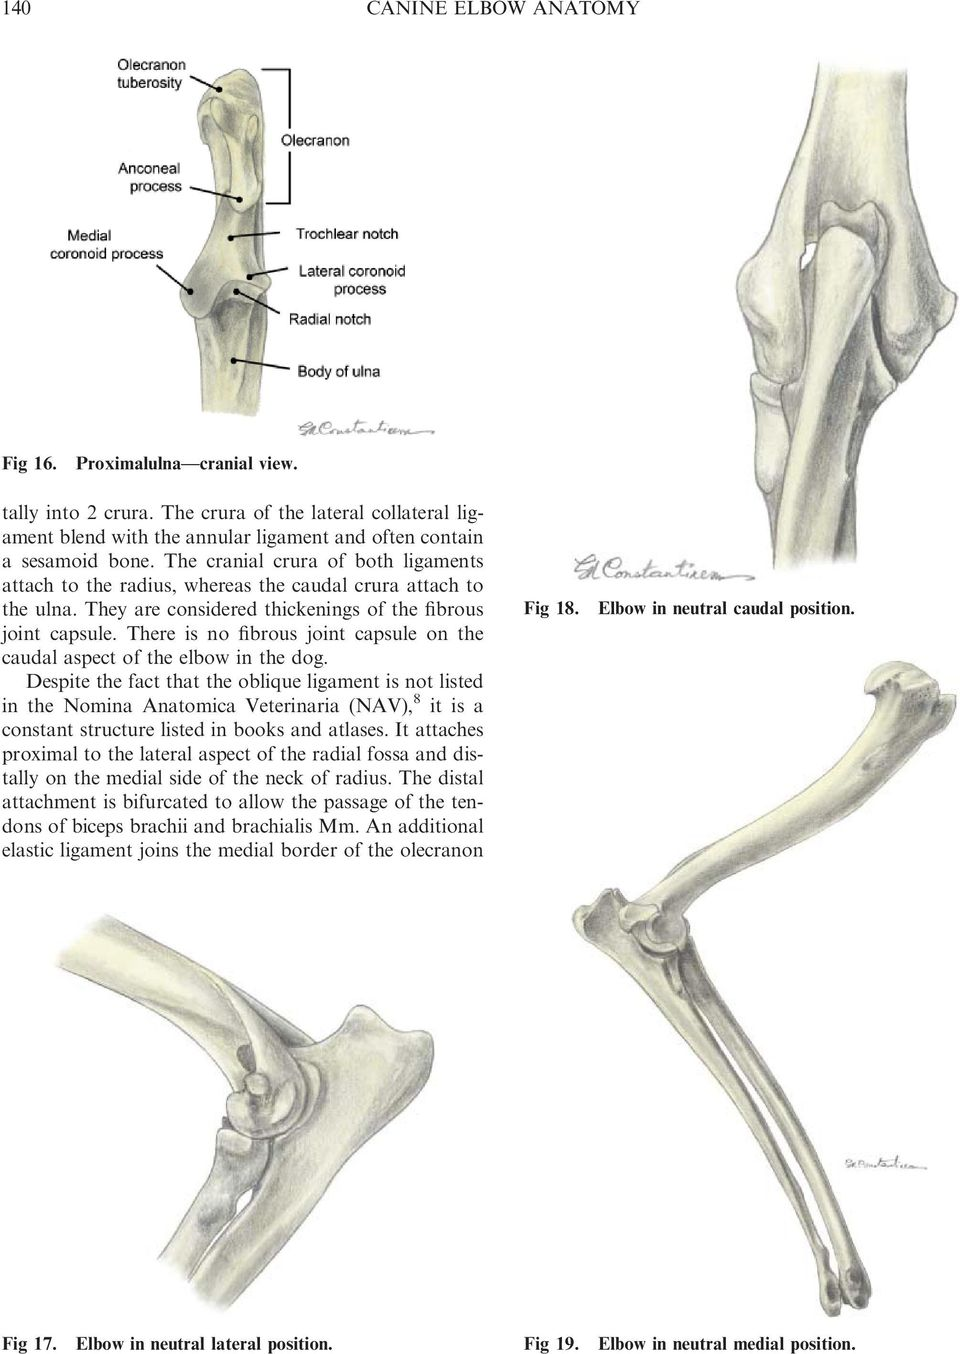 The Anatomy Of The Canine Elbow Has Been Fully Pdf